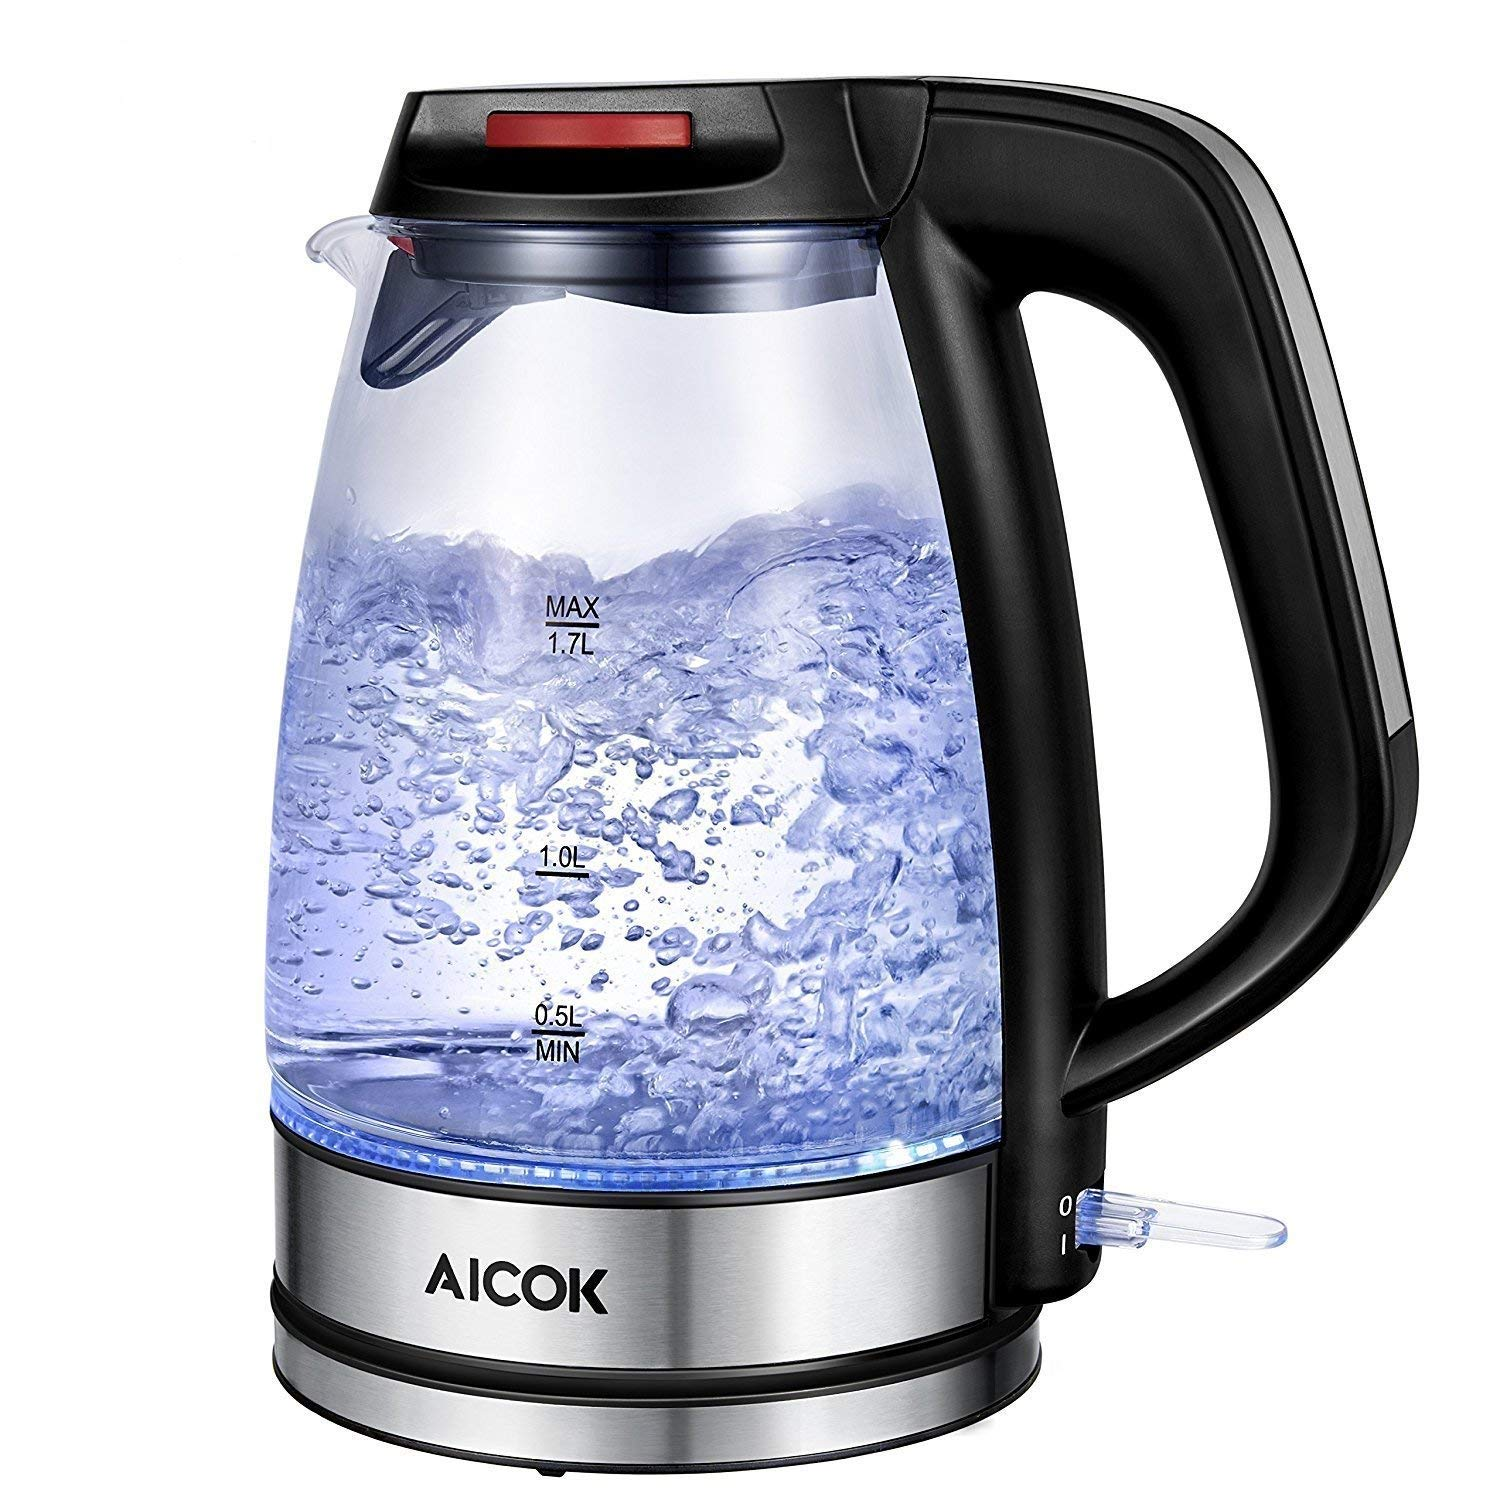 Aicok Glass Electric Kettle 1.7L Fast Water Kettle Premium Strix Thermostat Control Kettle LED Indicator Light Cordless Kettle, Auto Shut Off With Boil Dry Protection FDA Certified Tea Kettle, 1500W